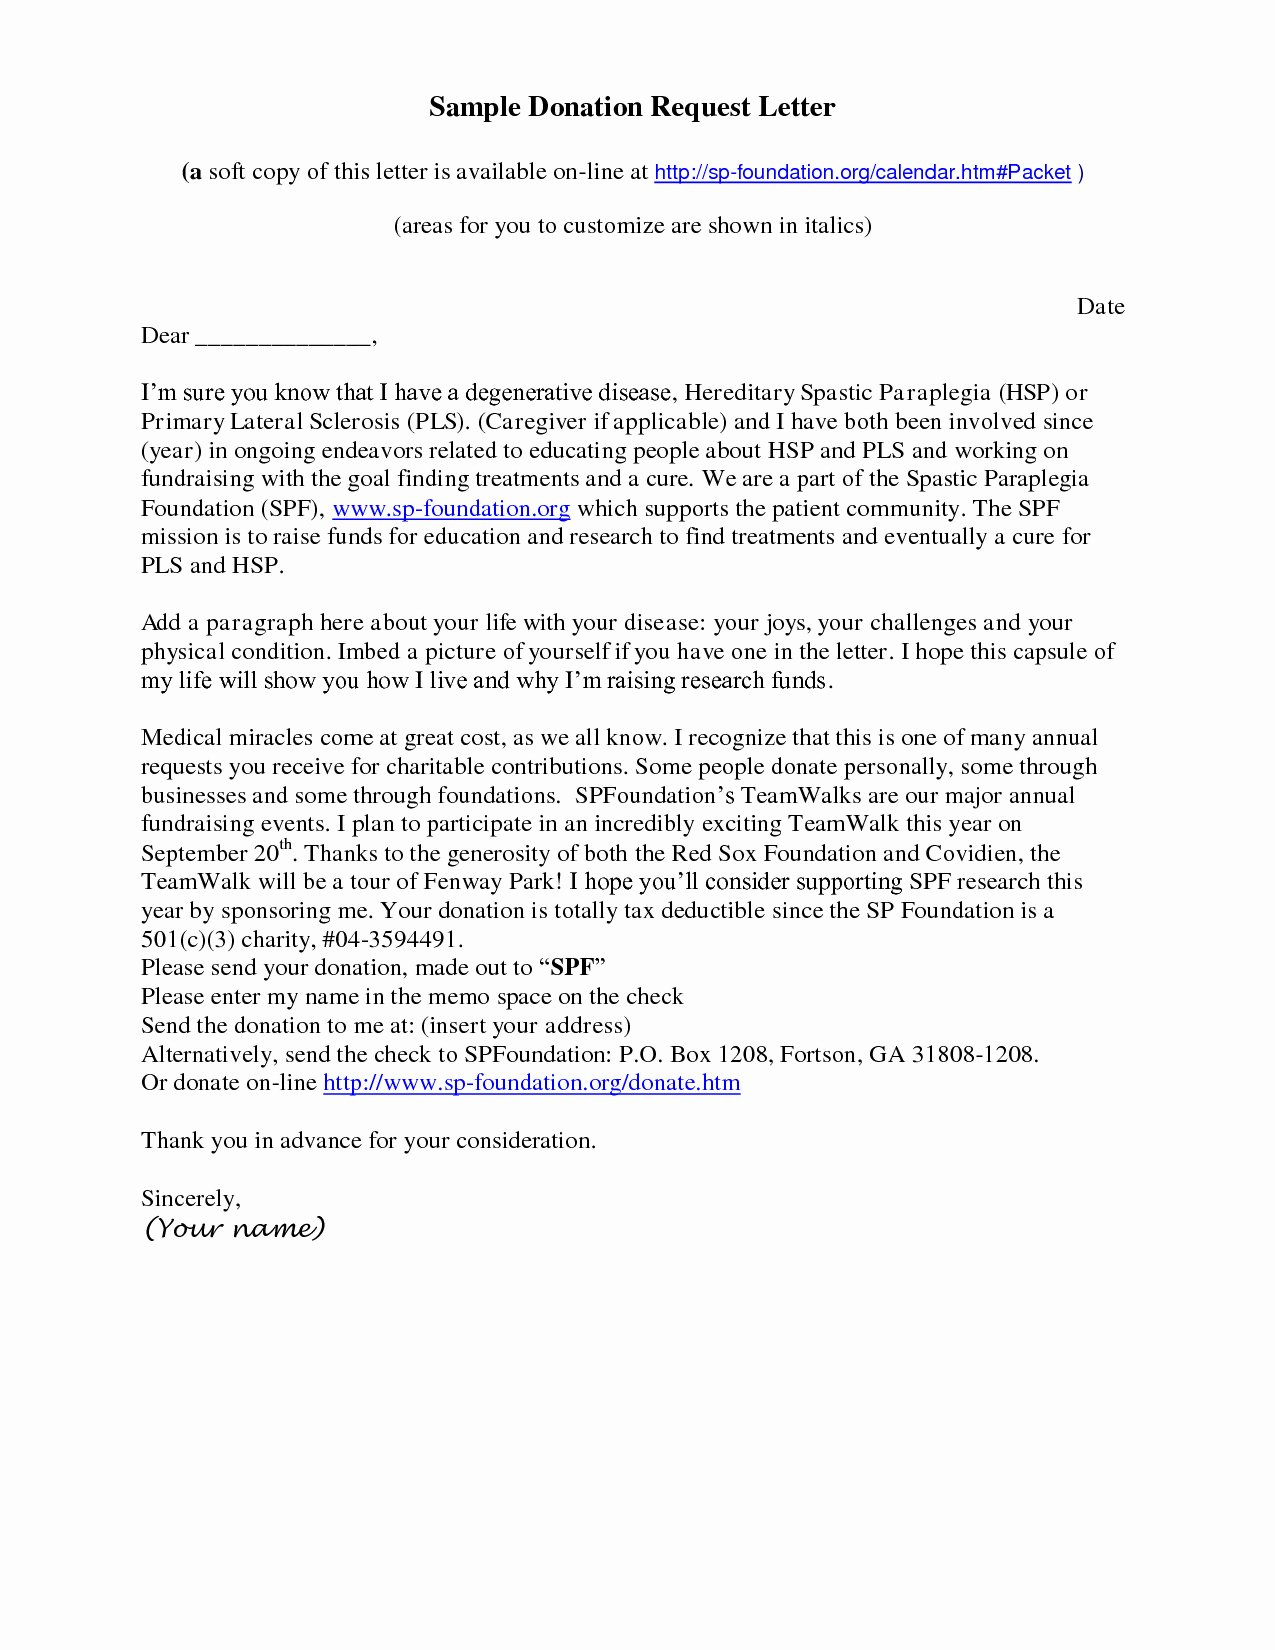 Charitable Donation Letter Template Best Of Charity Letter Template asking for Donations Examples